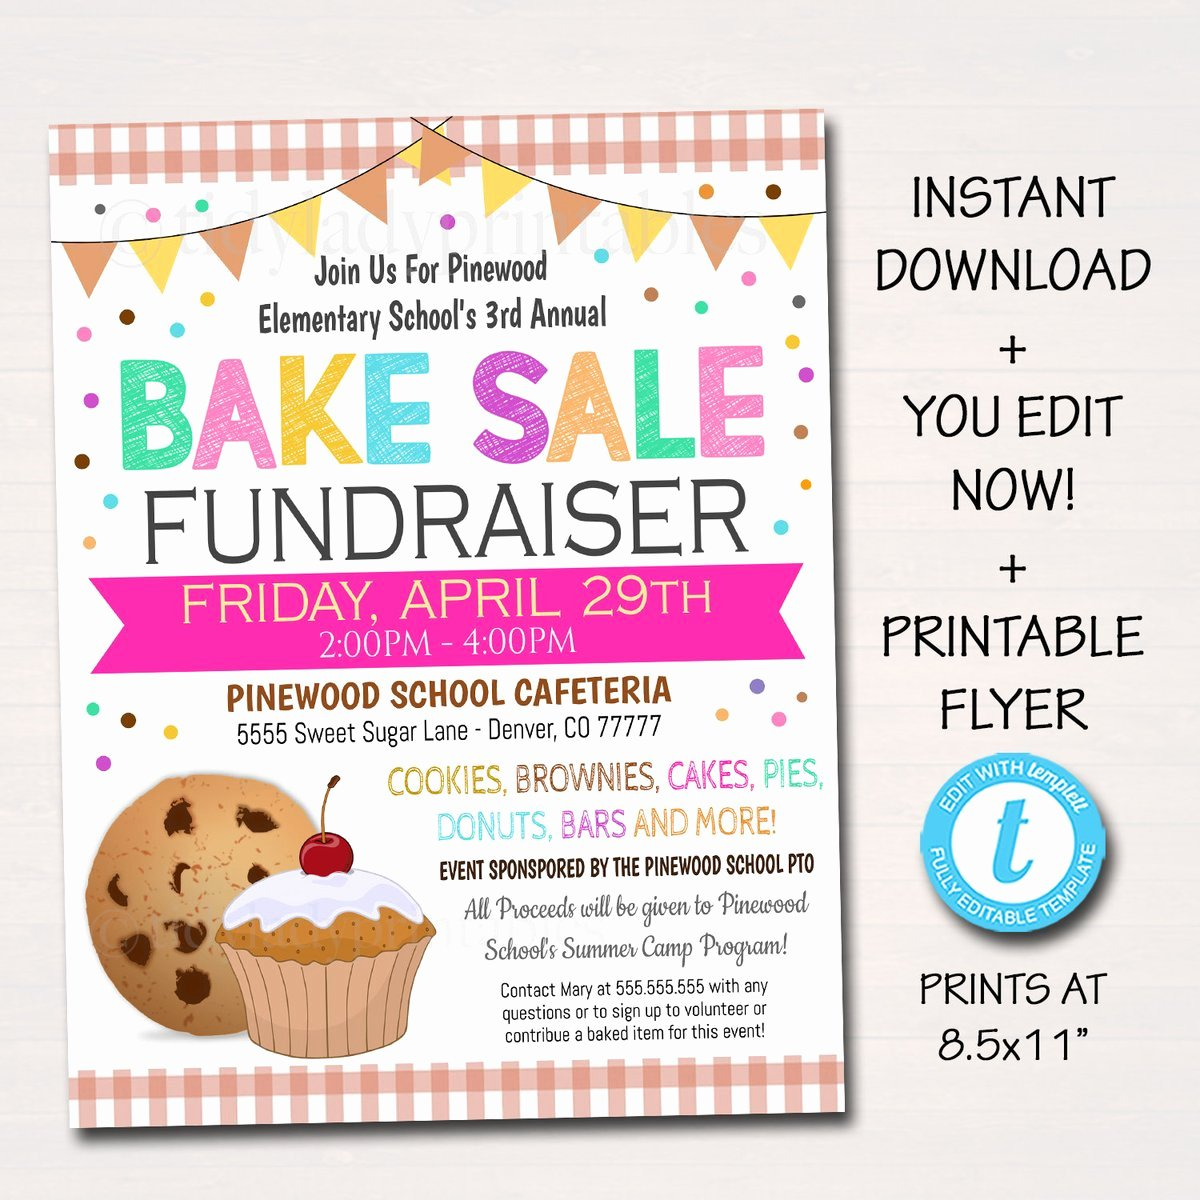 Bake Sale Fundraiser Flyer Template Awesome Editable Bake Sale Flyer Printable Pta Pto Flyer School Family Fund – Tidylady Printables